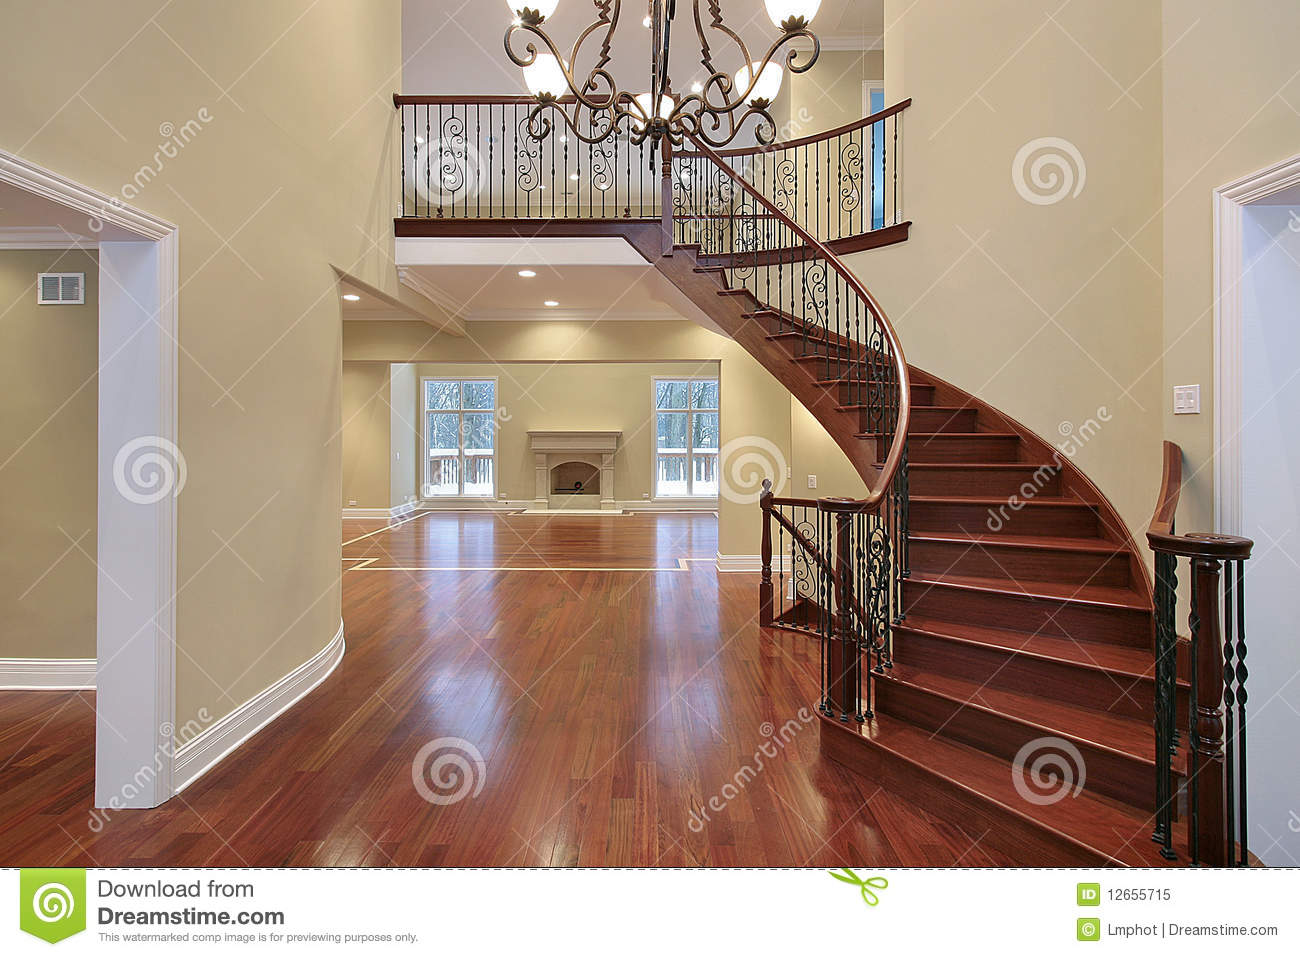 Entrance Foyer Circulation And Balcony In A House : Foyer with balcony and curved staircase royalty free stock